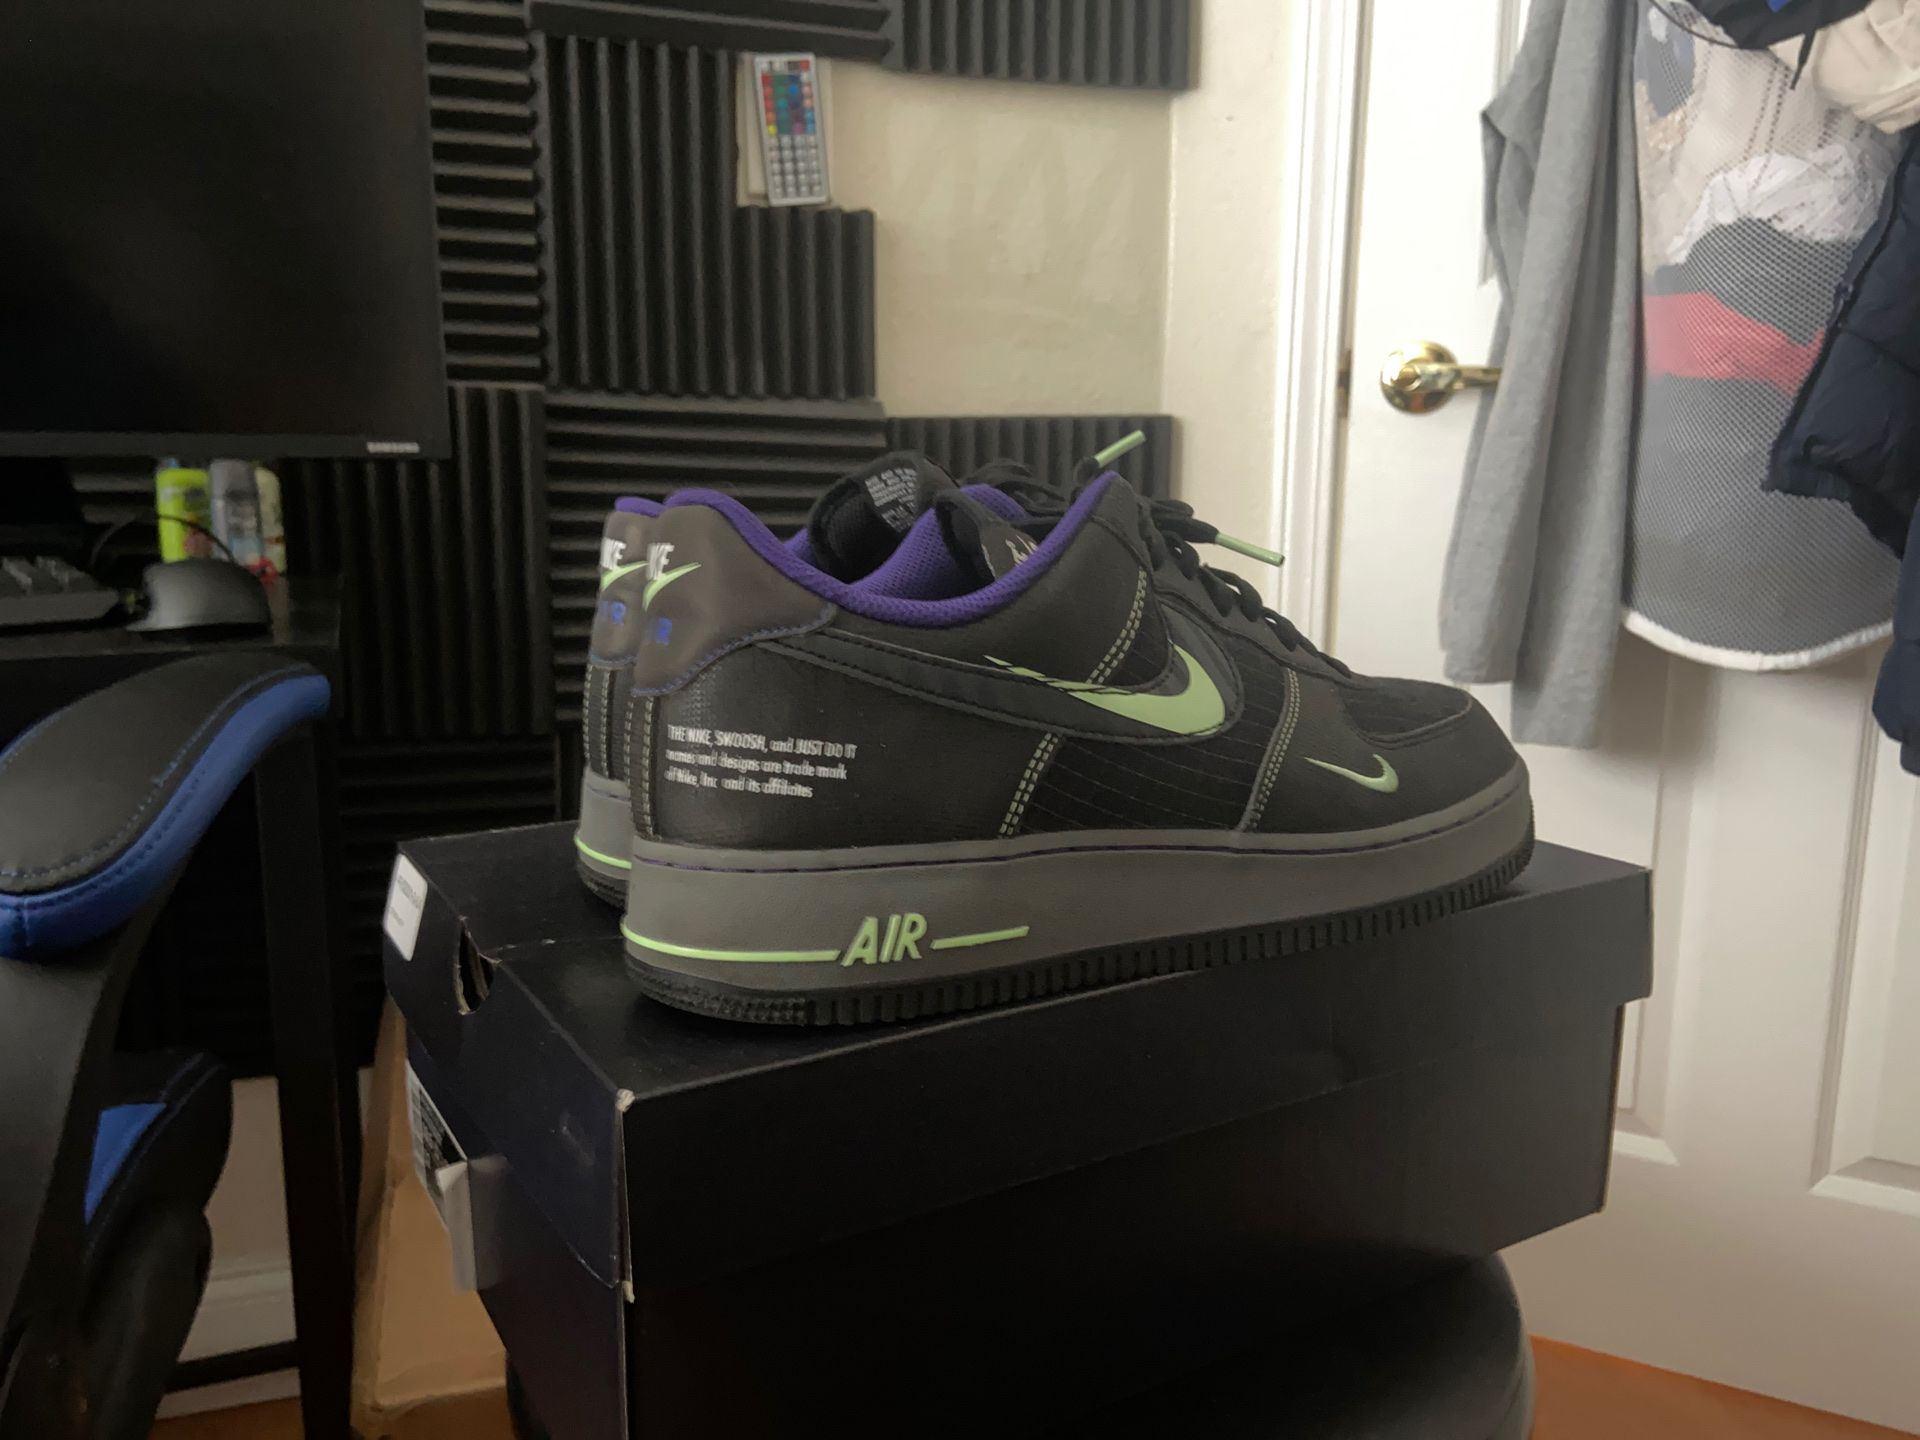 Air Force 1 Size 10.5 (3M crazy👀)